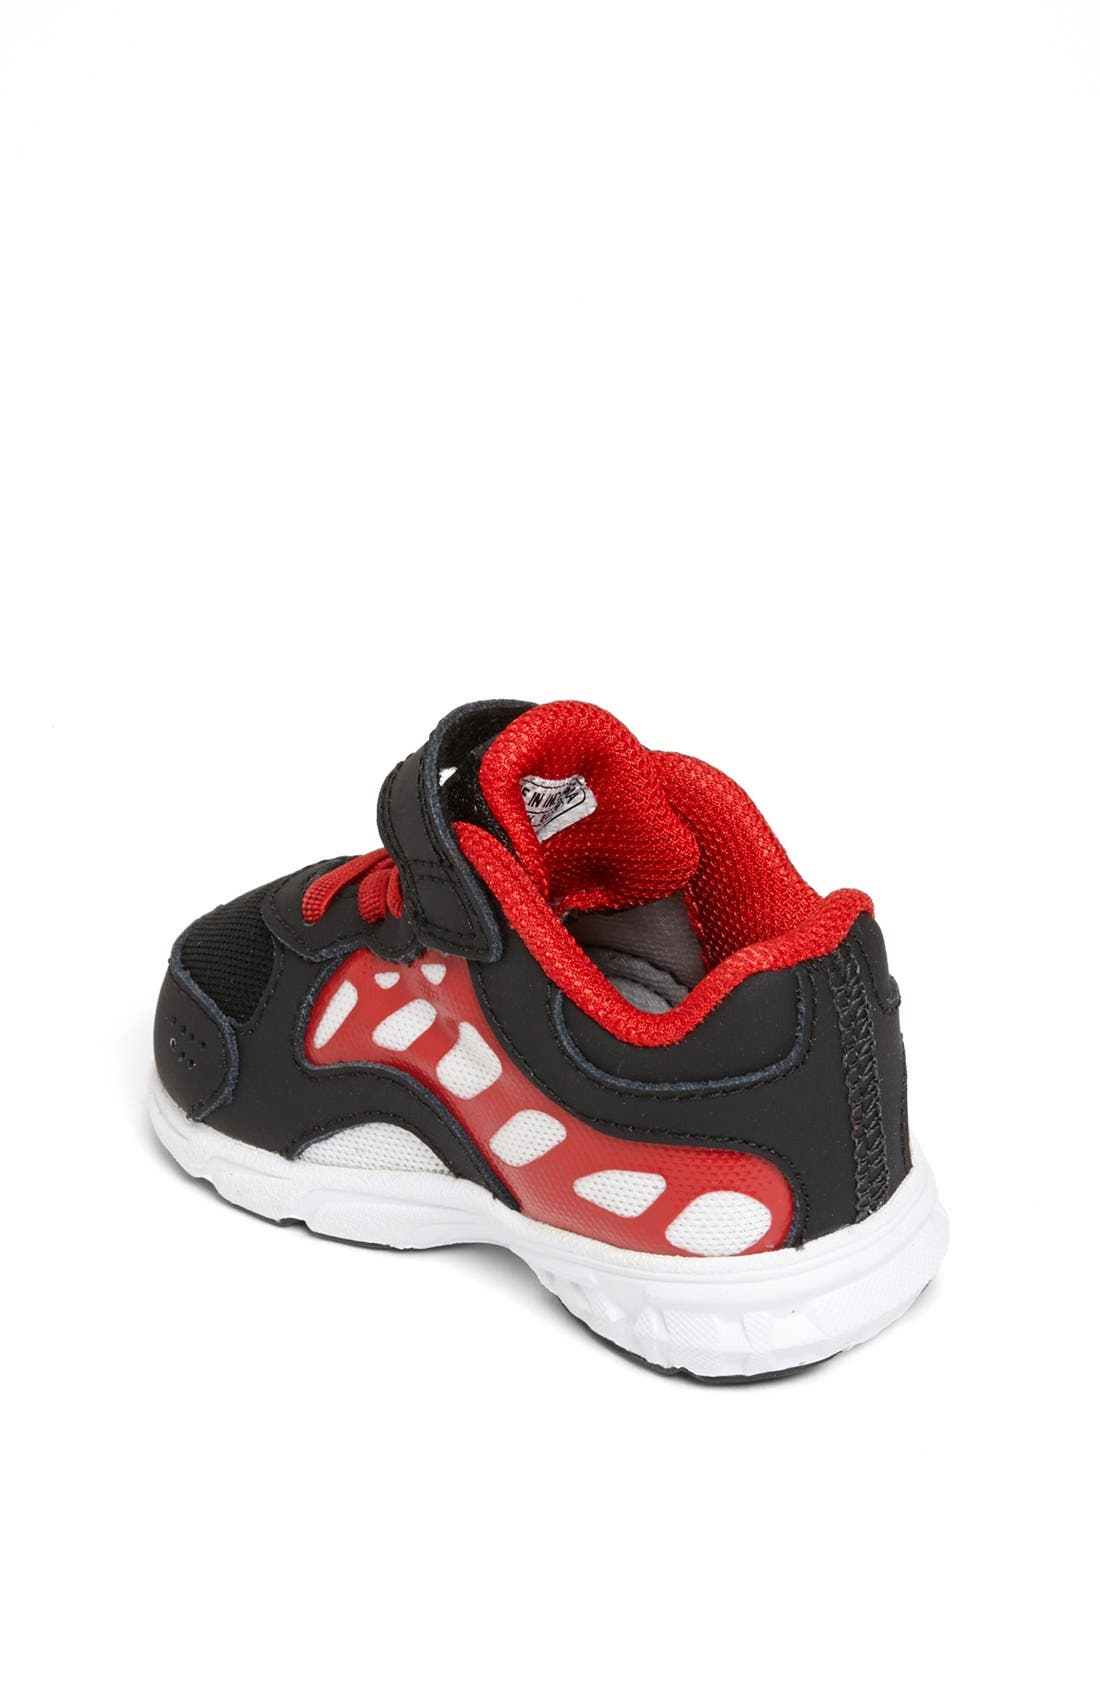 Alternate Image 2  - Under Armour 'Ignite' Sneaker (Baby, Walker & Toddler)